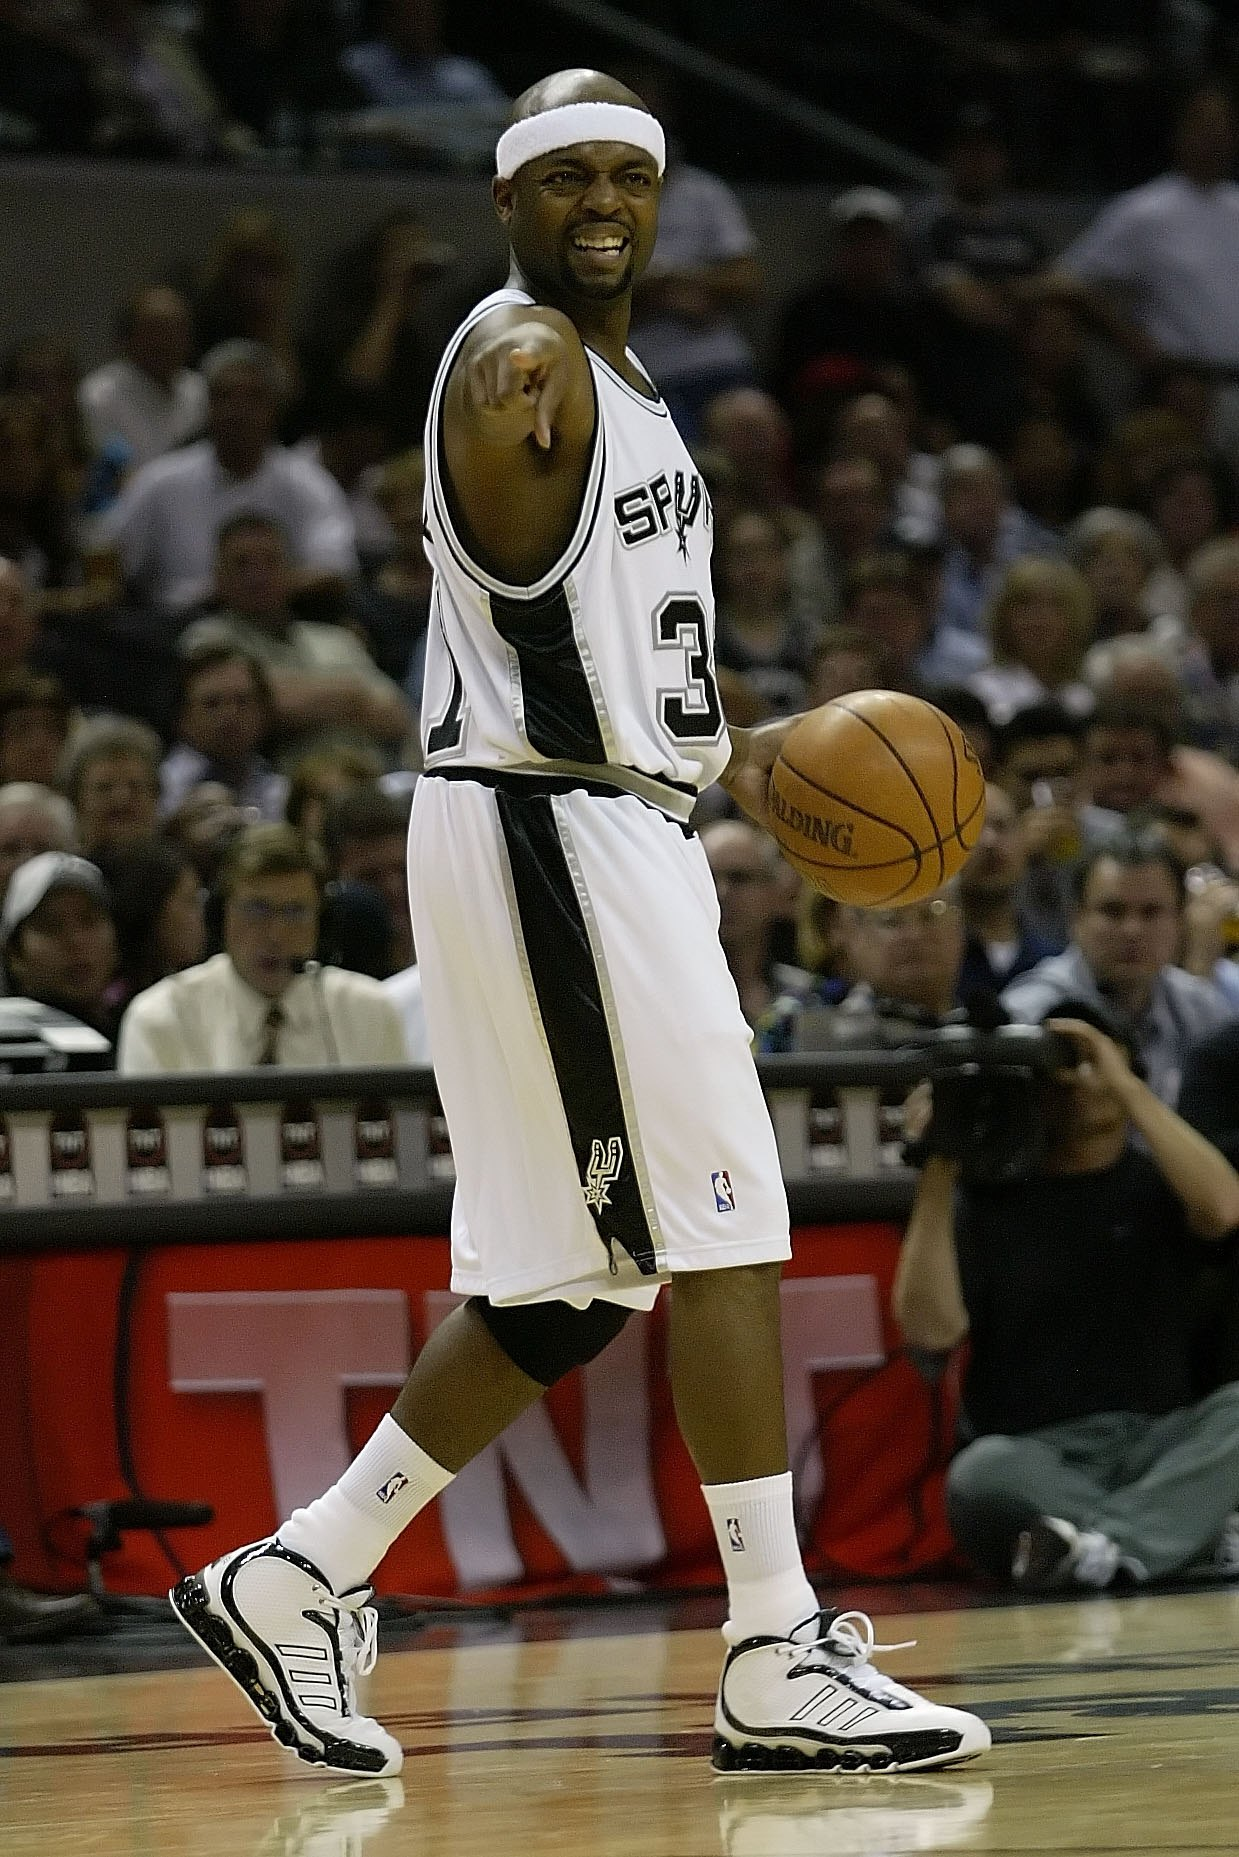 SAN ANTONIO - MAY 17:  Nick Van Exel #31 of the San Antonio Spurs runs the offense against the Dallas Mavericks in Game Five of the Western Conference Semifinals during the 2006 NBA Playoffs May 17, 2006 at AT&T Center in San Antonio, Texas. NOTE TO USER: